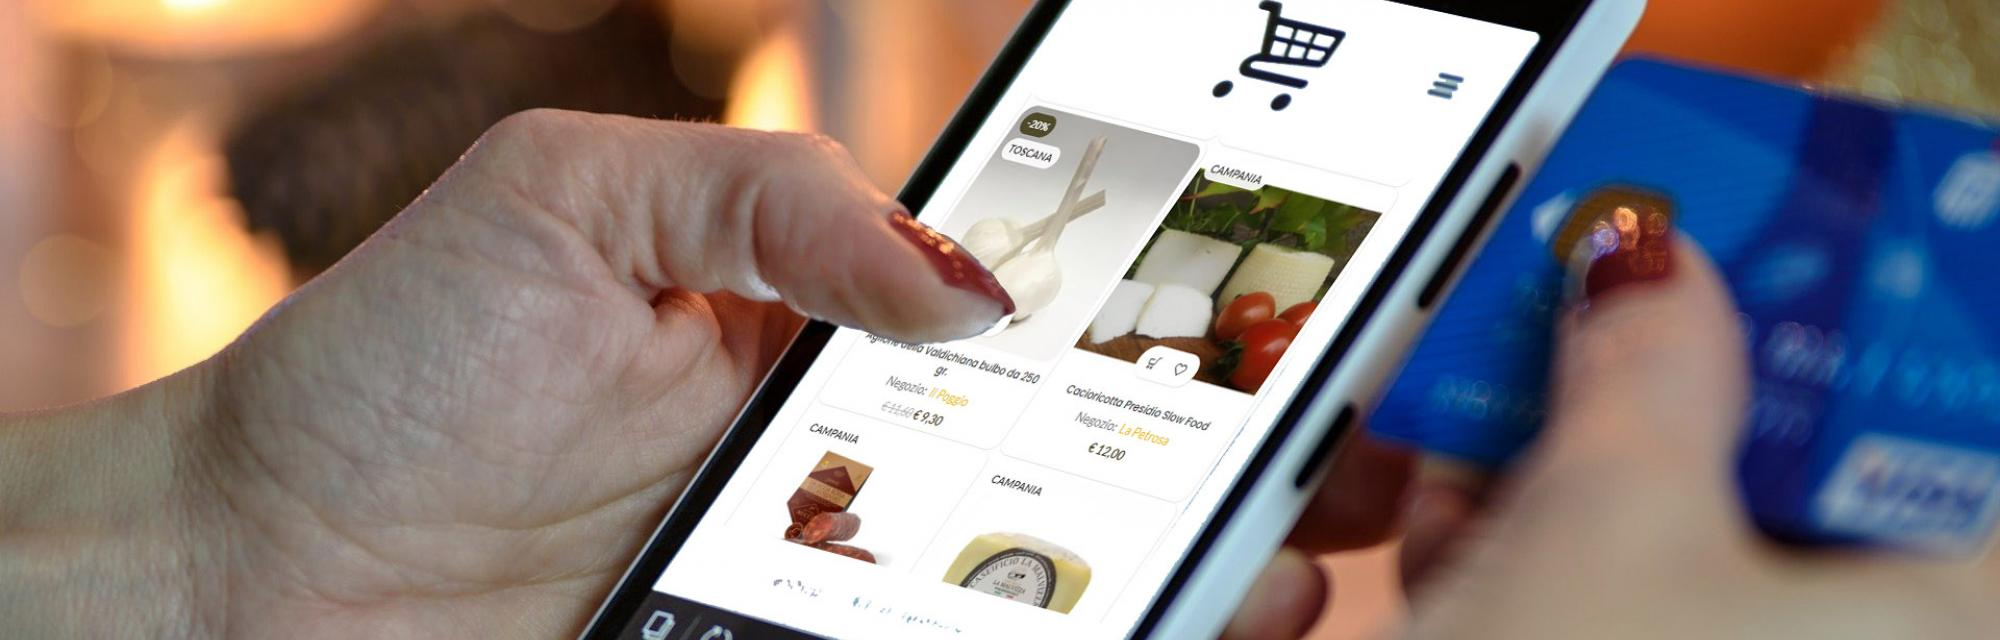 E-commerce, vendere on line